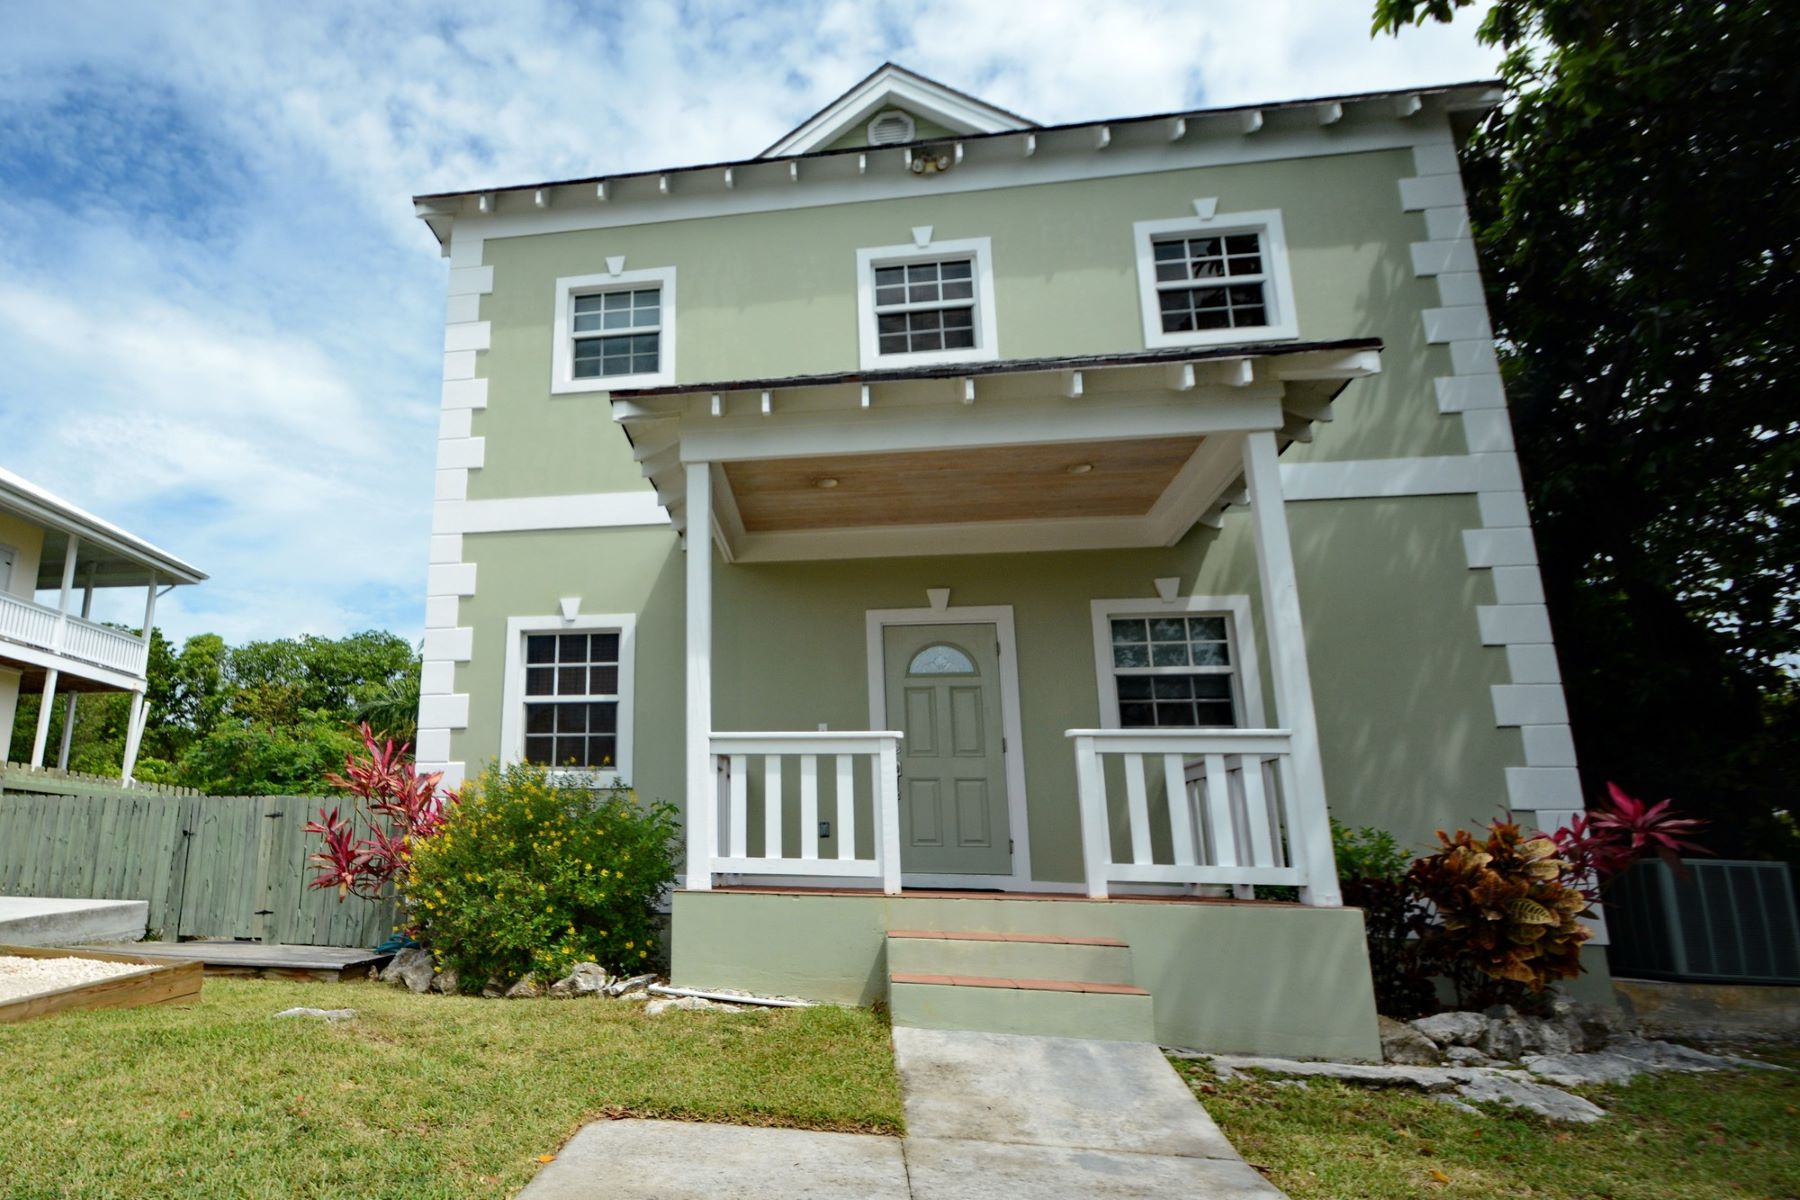 Single Family Home for Sale at Carroll House Sunrise Bay, Marsh Harbour, Abaco Bahamas